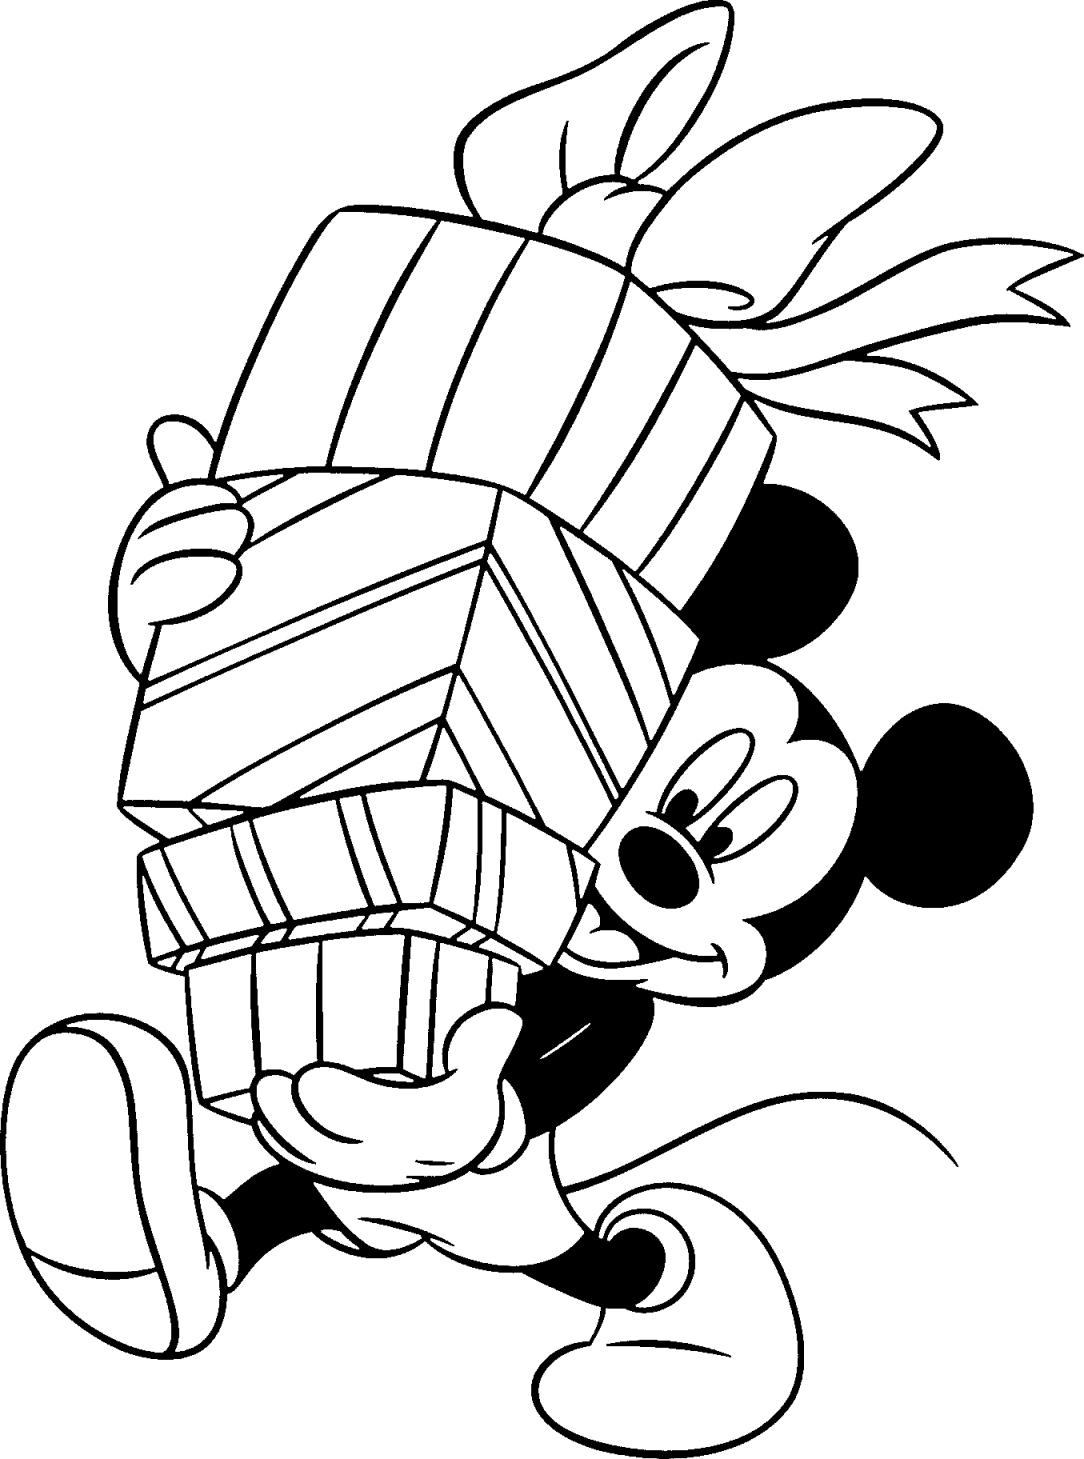 Mickey Mouse Coloring Pages Wallpapers Photos Hq Mickey Mouse Coloring Pages